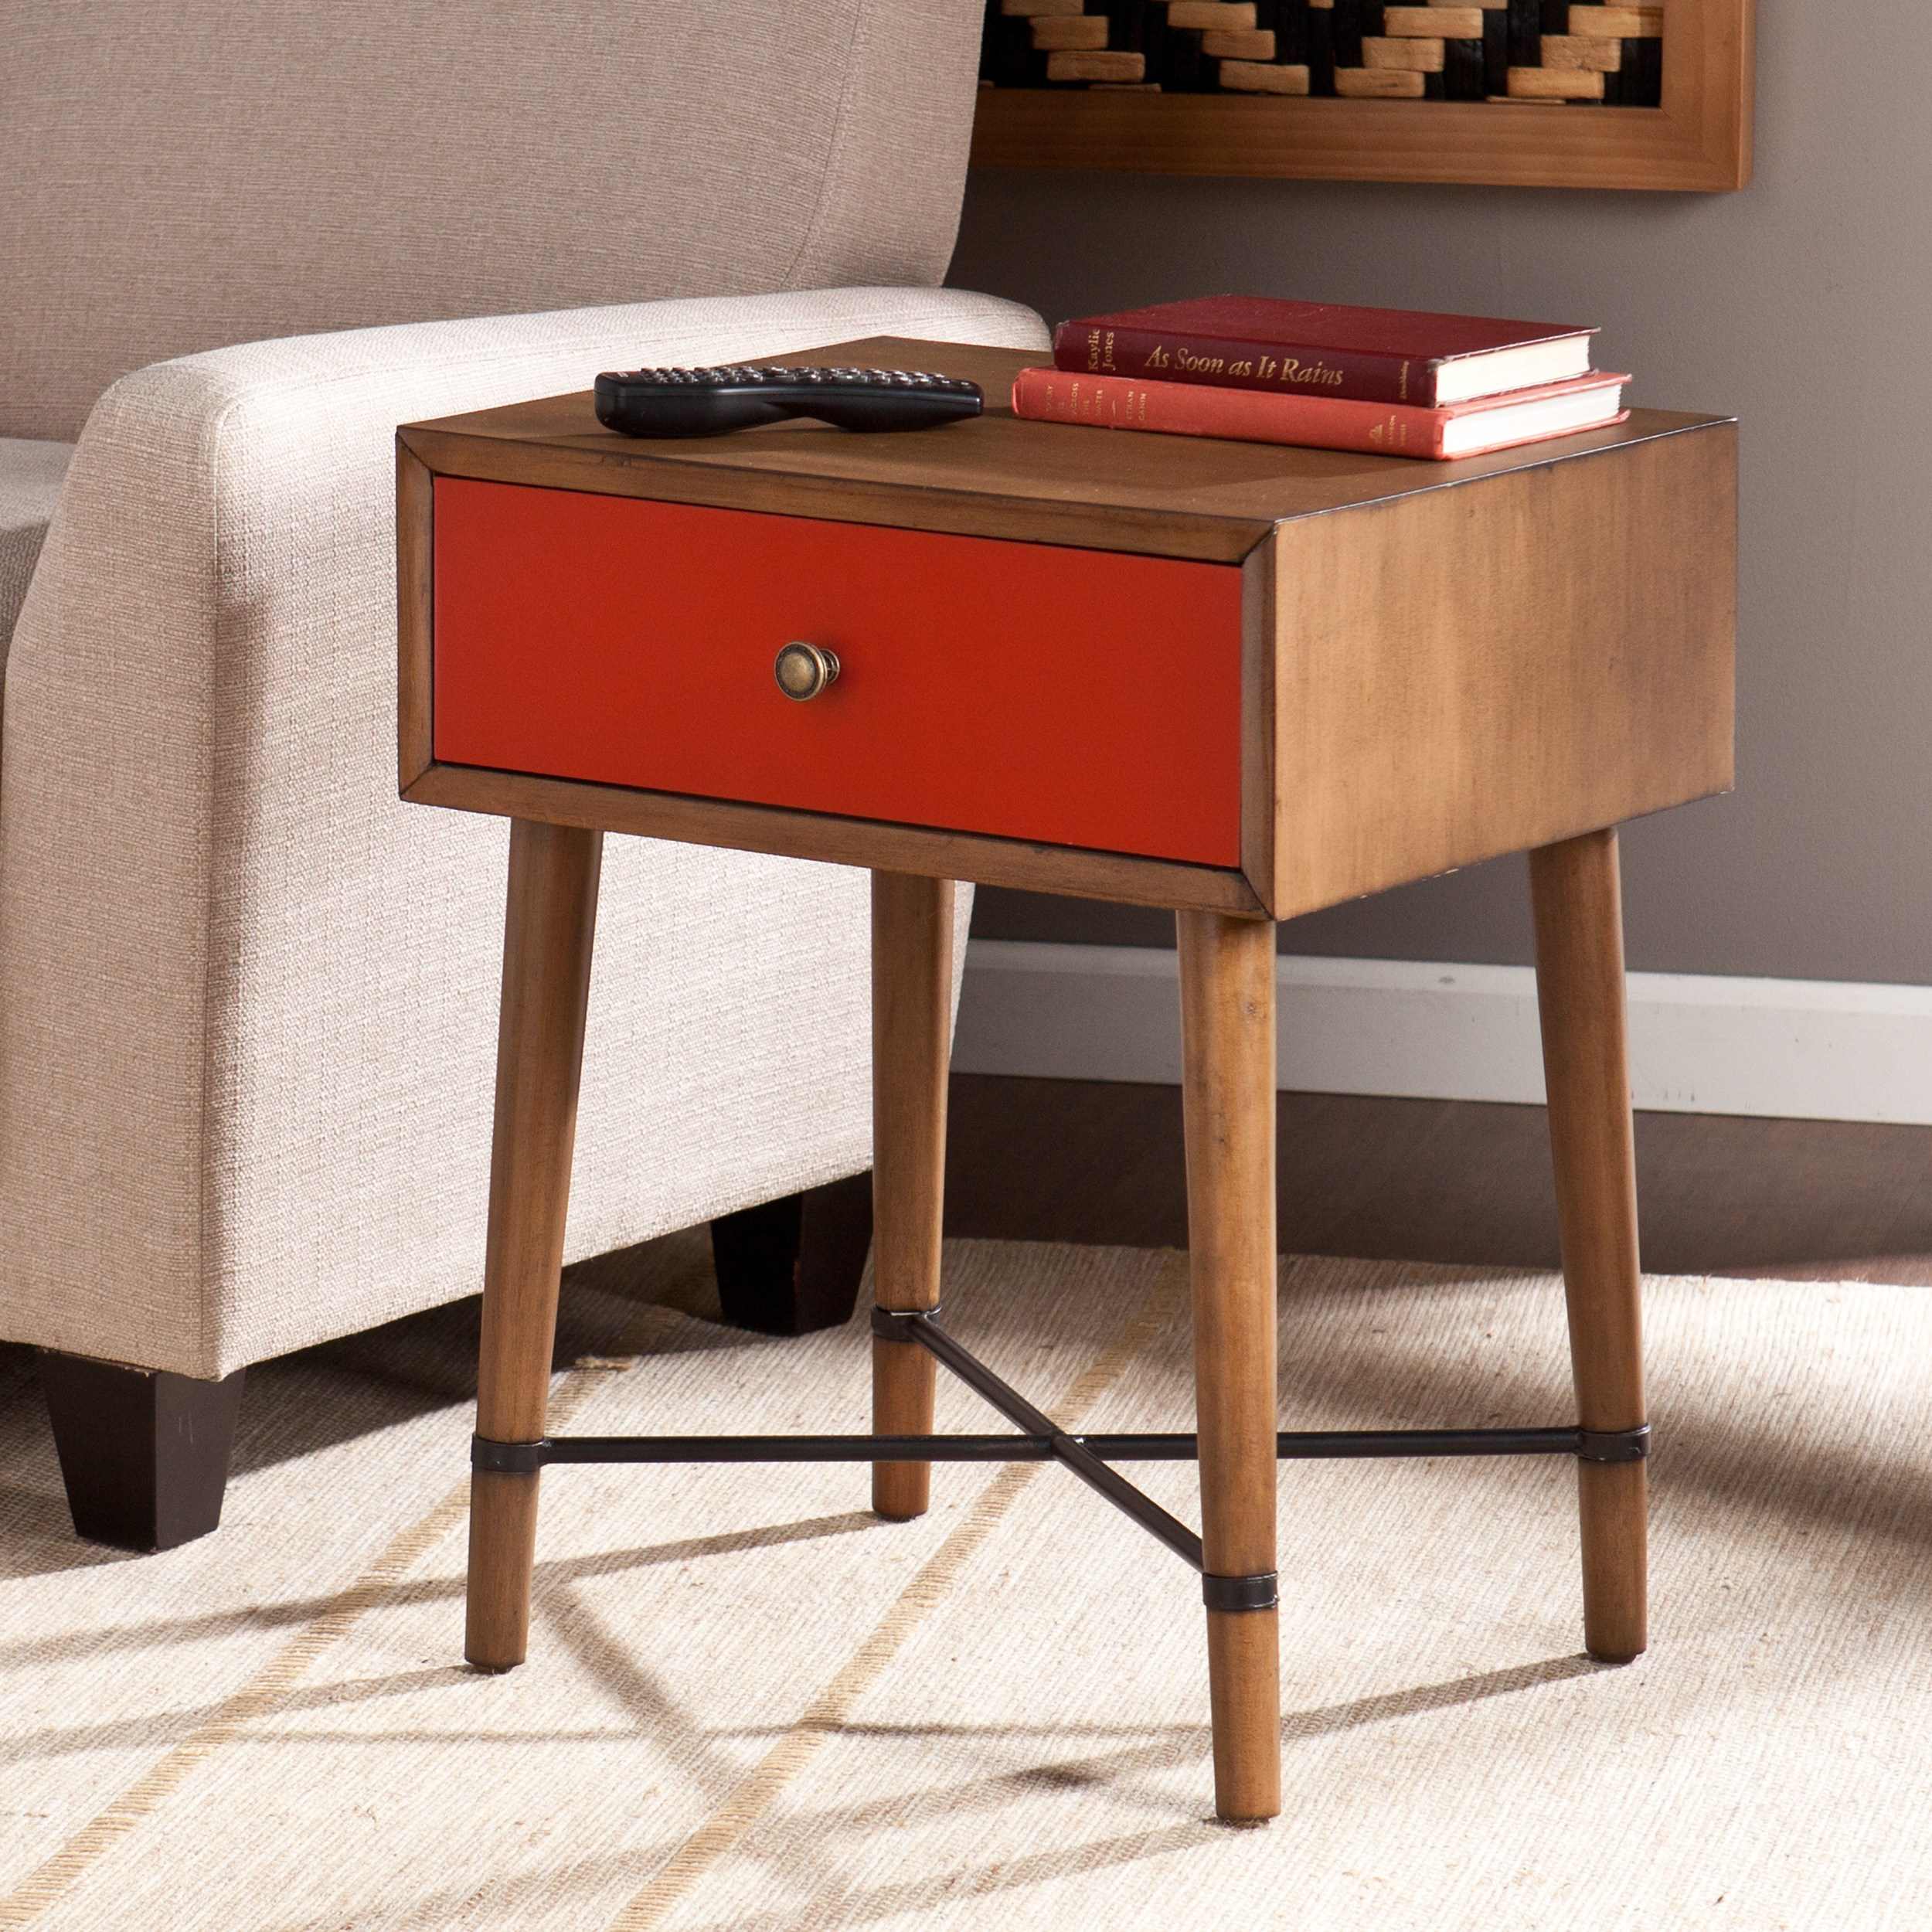 harper blvd niles red accent table free shipping today wood rustic couch inch round tablecloth white rectangle coffee side with drawers living room lateral file cabinet chic end